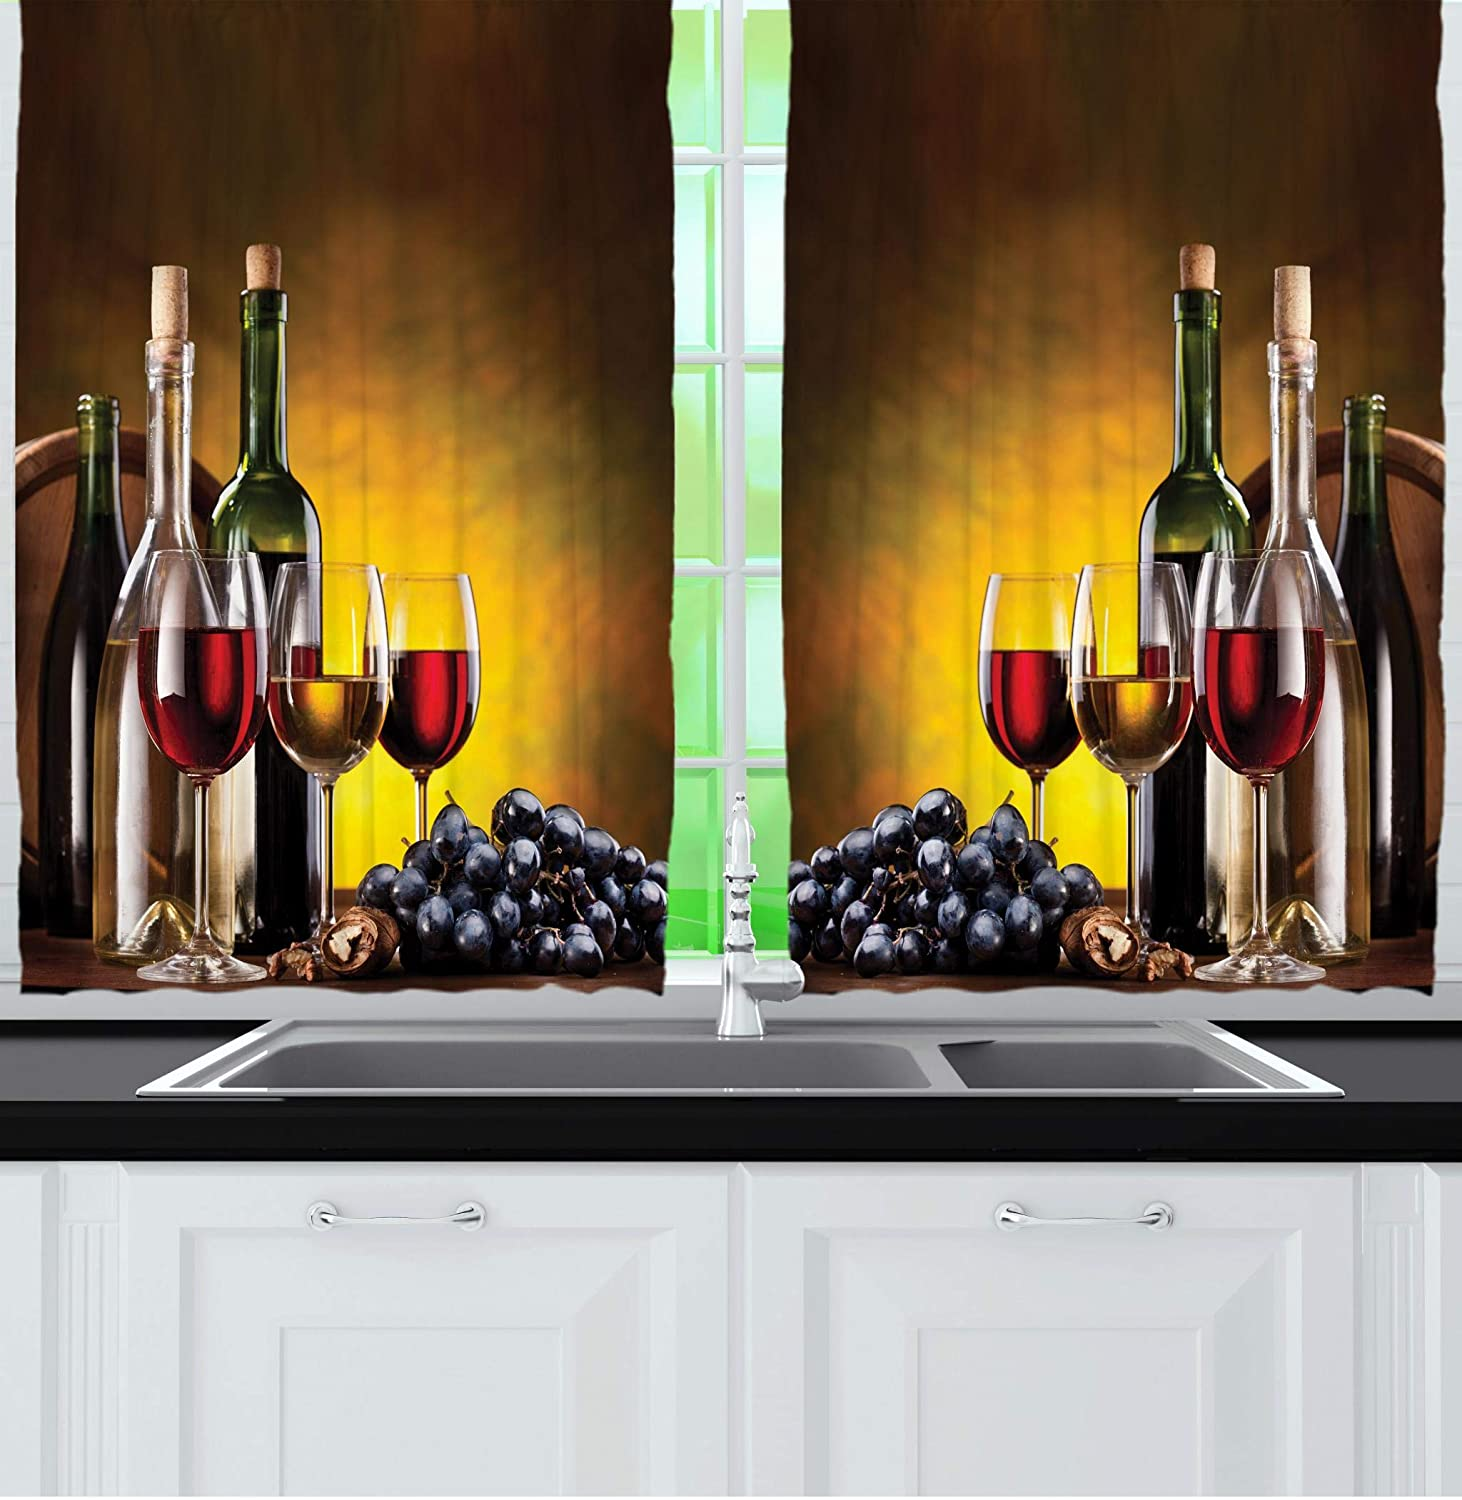 """Ambesonne Tuscany Wine Land Decor Collection, Grapes Wines Bottles Glasses Picture Printed Artwork, Window Treatments for Kitchen Dining Room Curtains 2 Panels Set, 55"""" X 39"""", Brown Black Red Yellow"""